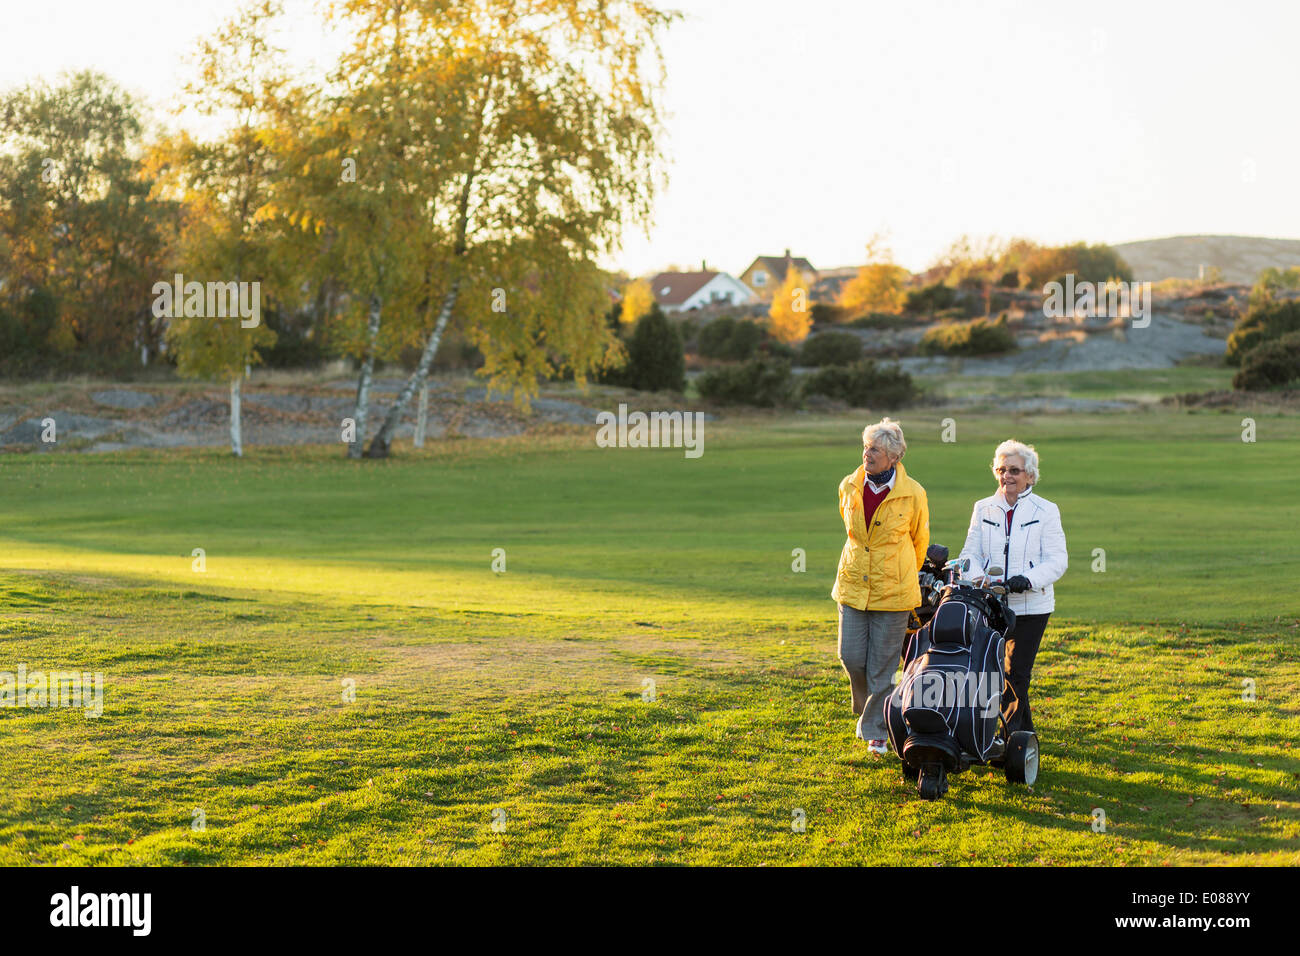 Senior female friends walking with golf bags on course - Stock Image